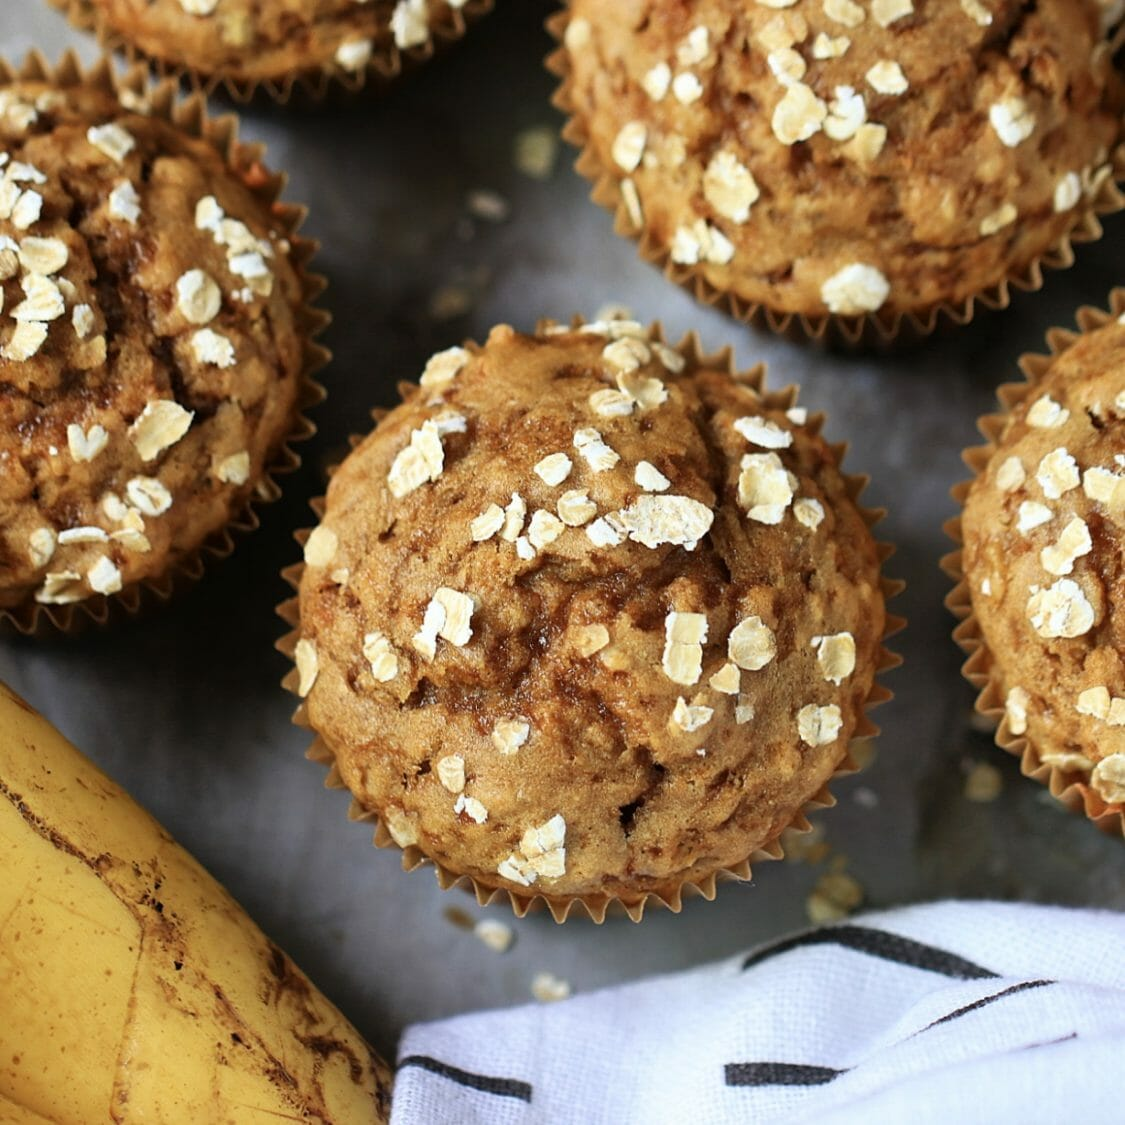 The BEST Banana Oat Muffin recipe